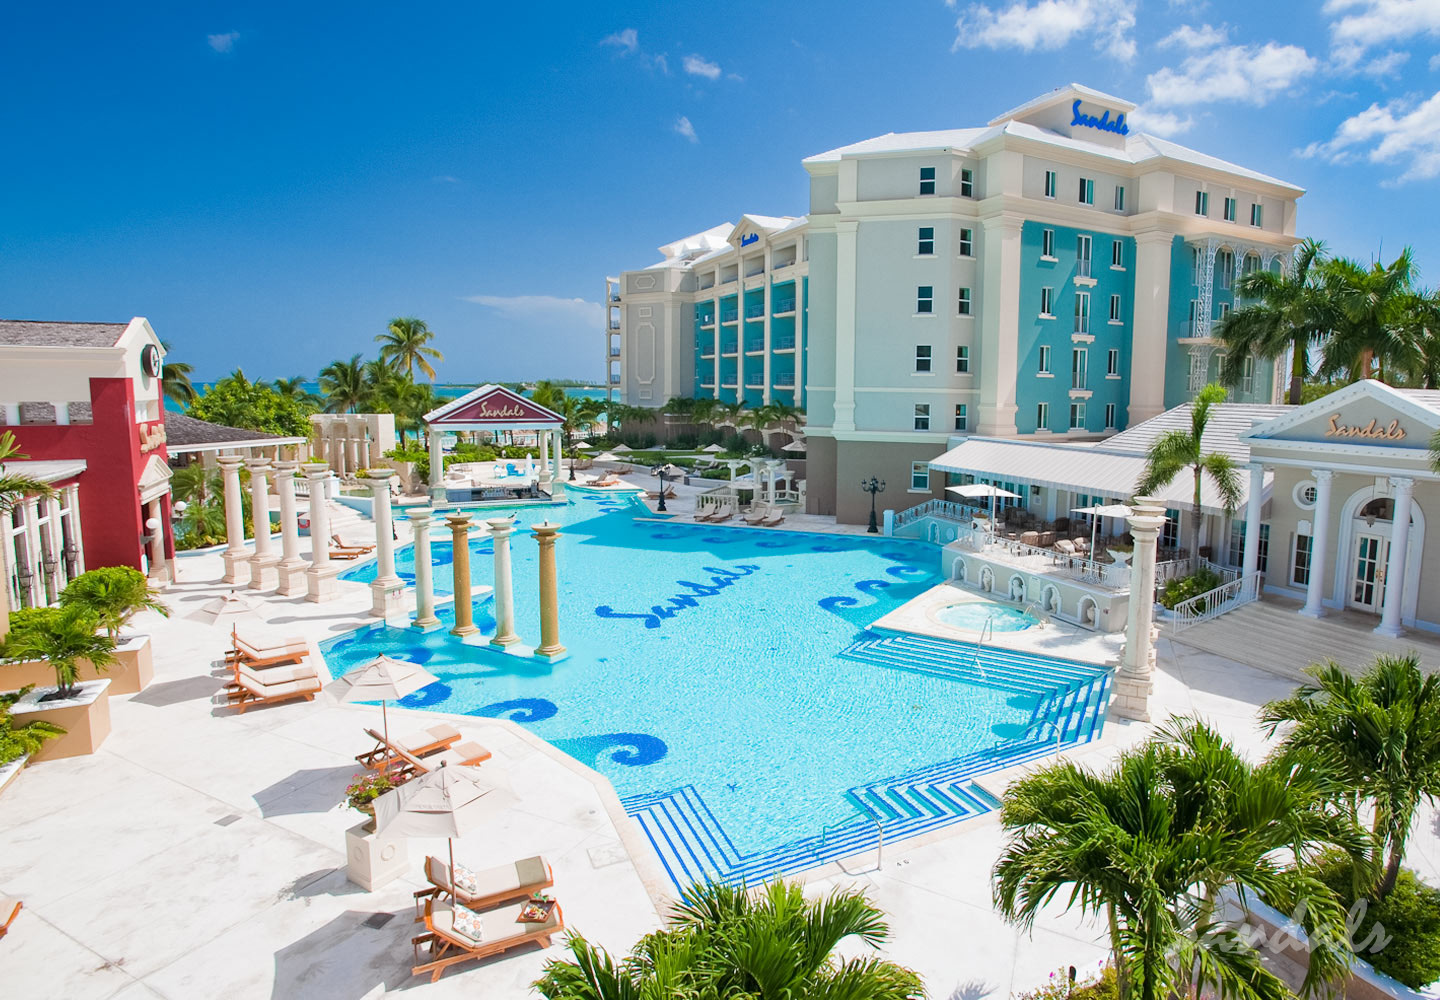 Travel Agency All-Inclusive Resort Sandals Royal Bahamian 007